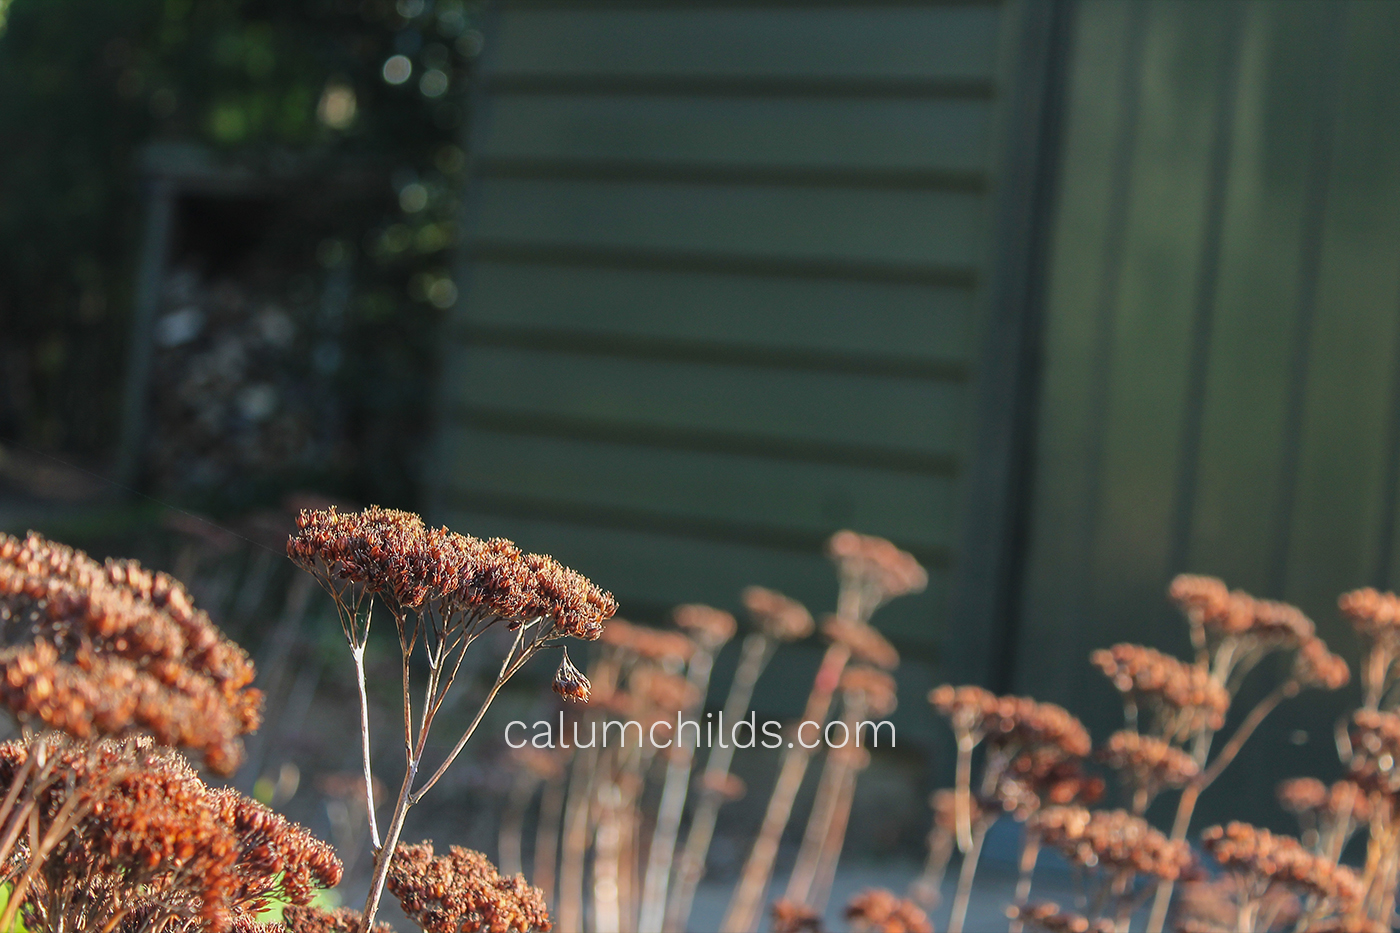 The brown seed heads of summer flowers still say a bold statement - even in the middle of winter!